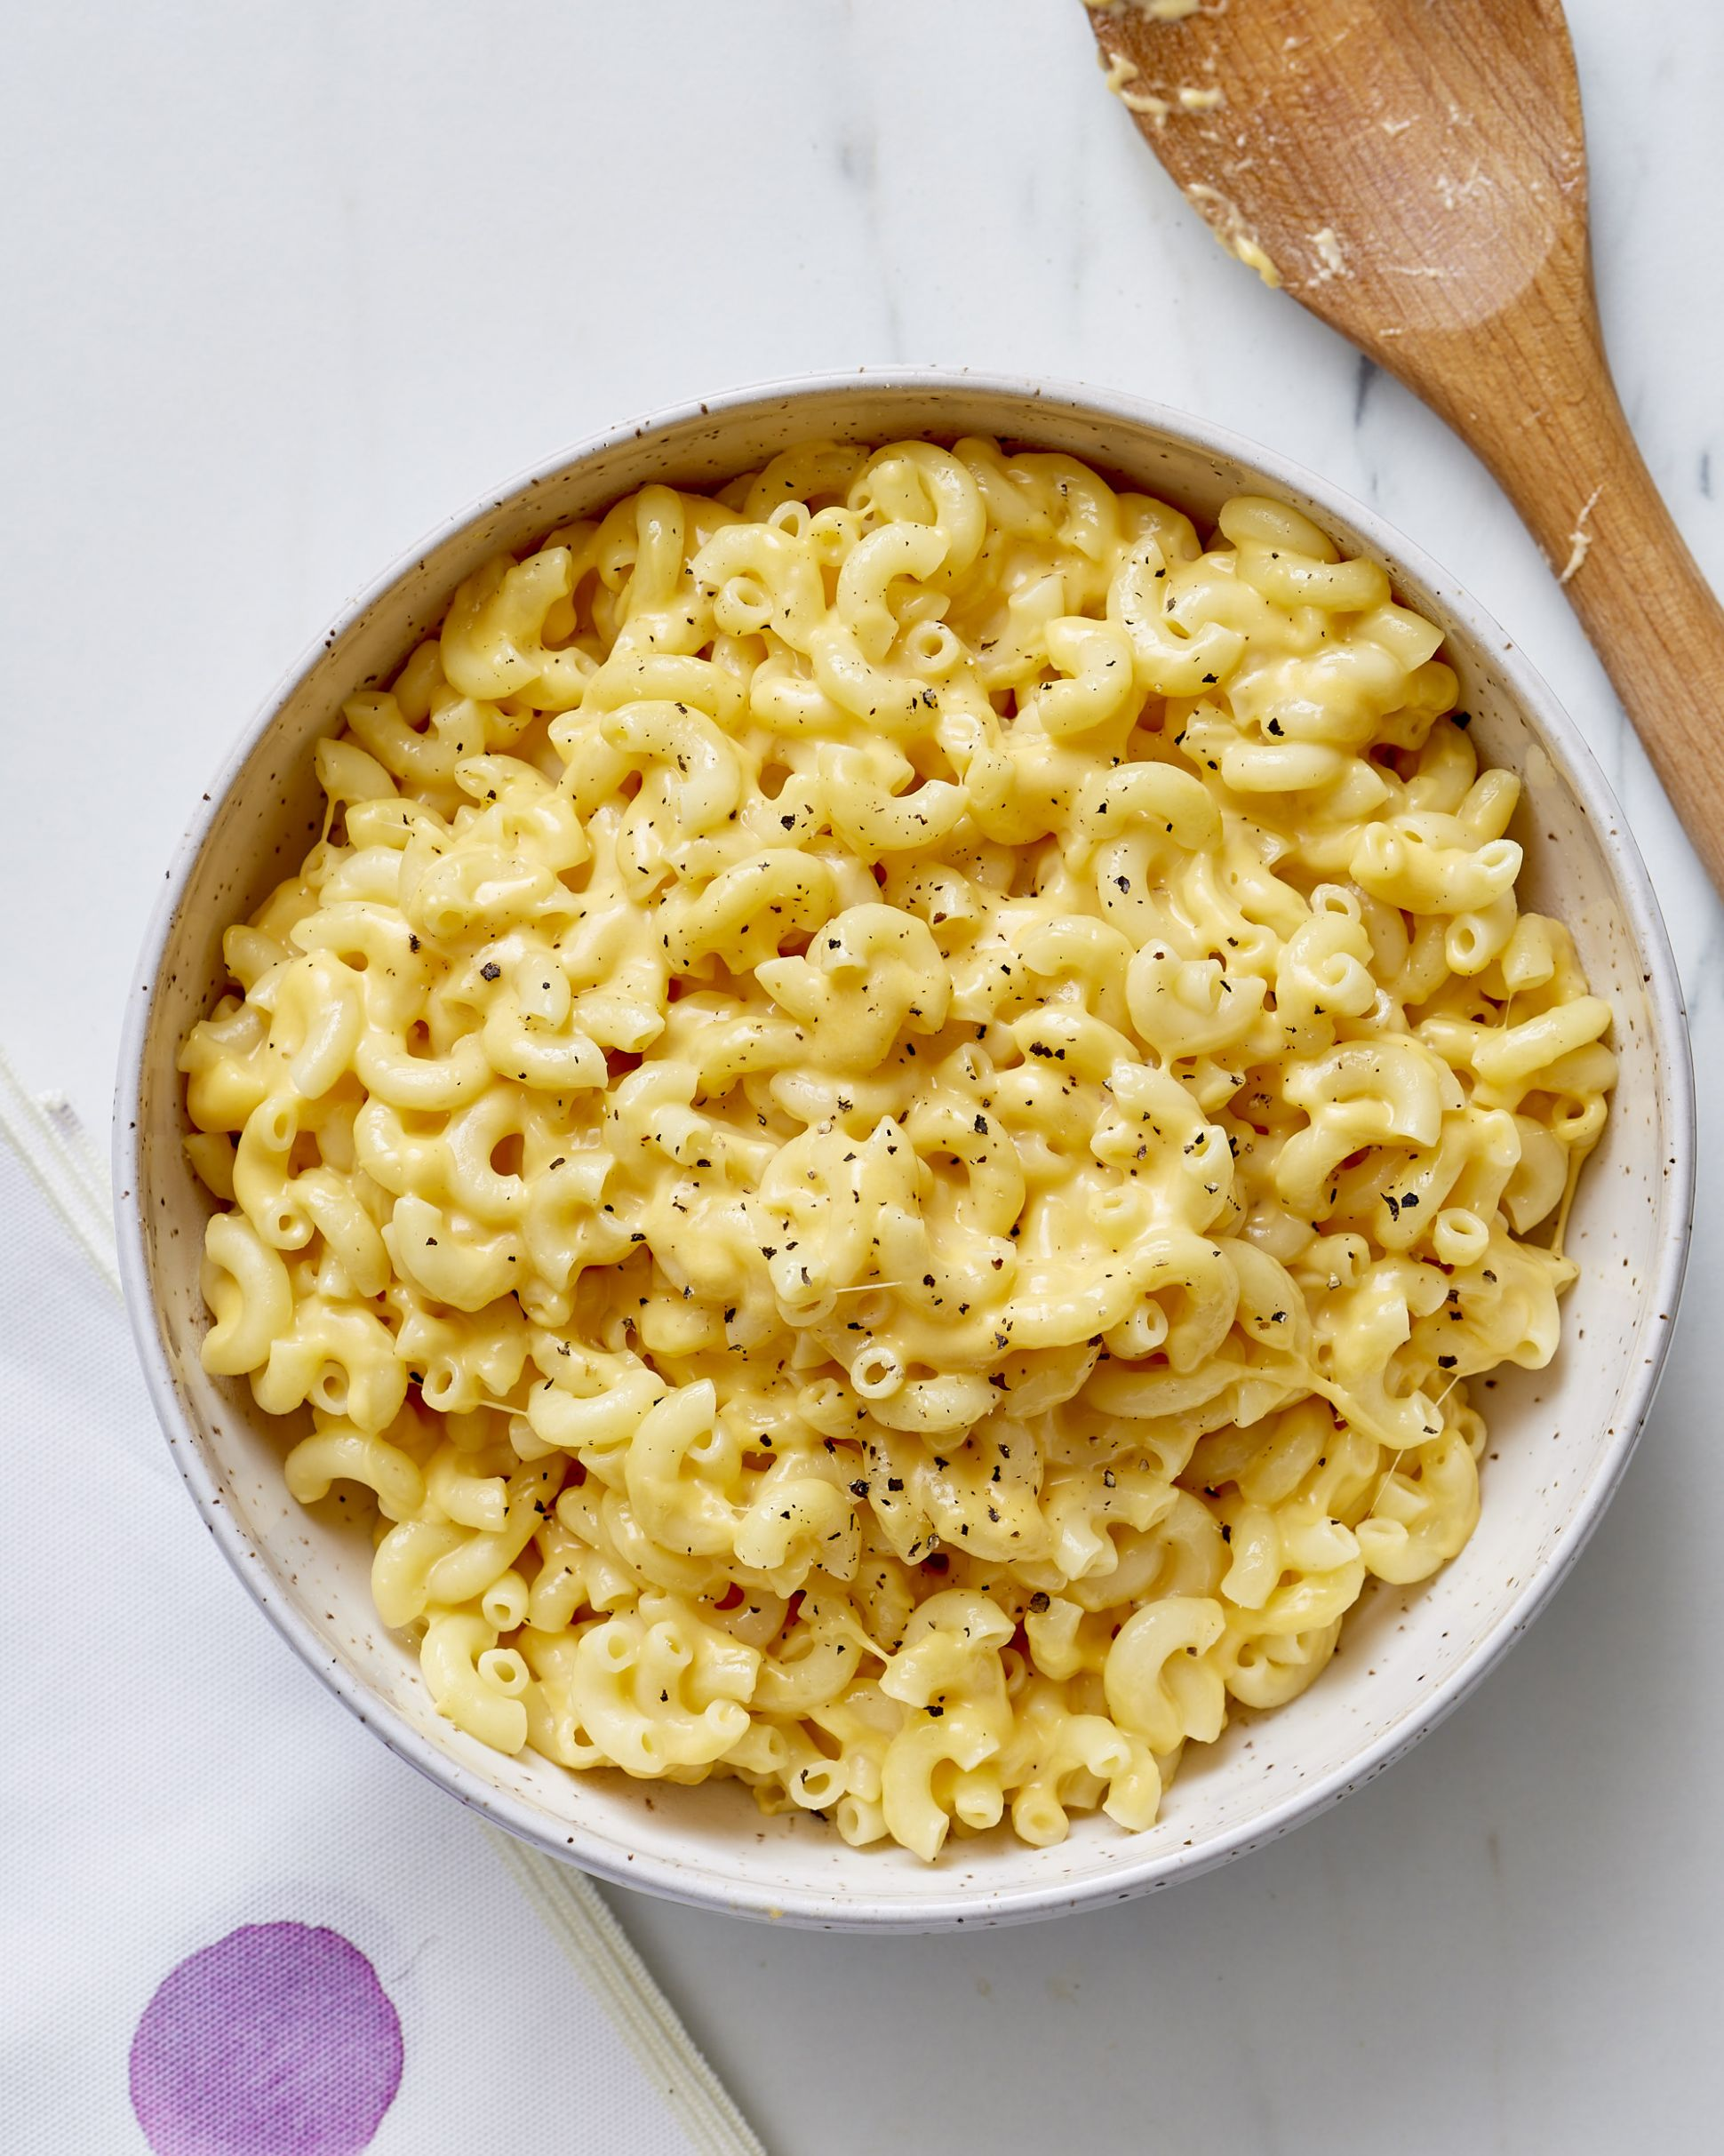 How To Make Creamy Macaroni and Cheese on the Stove - Recipes Pasta Cheese